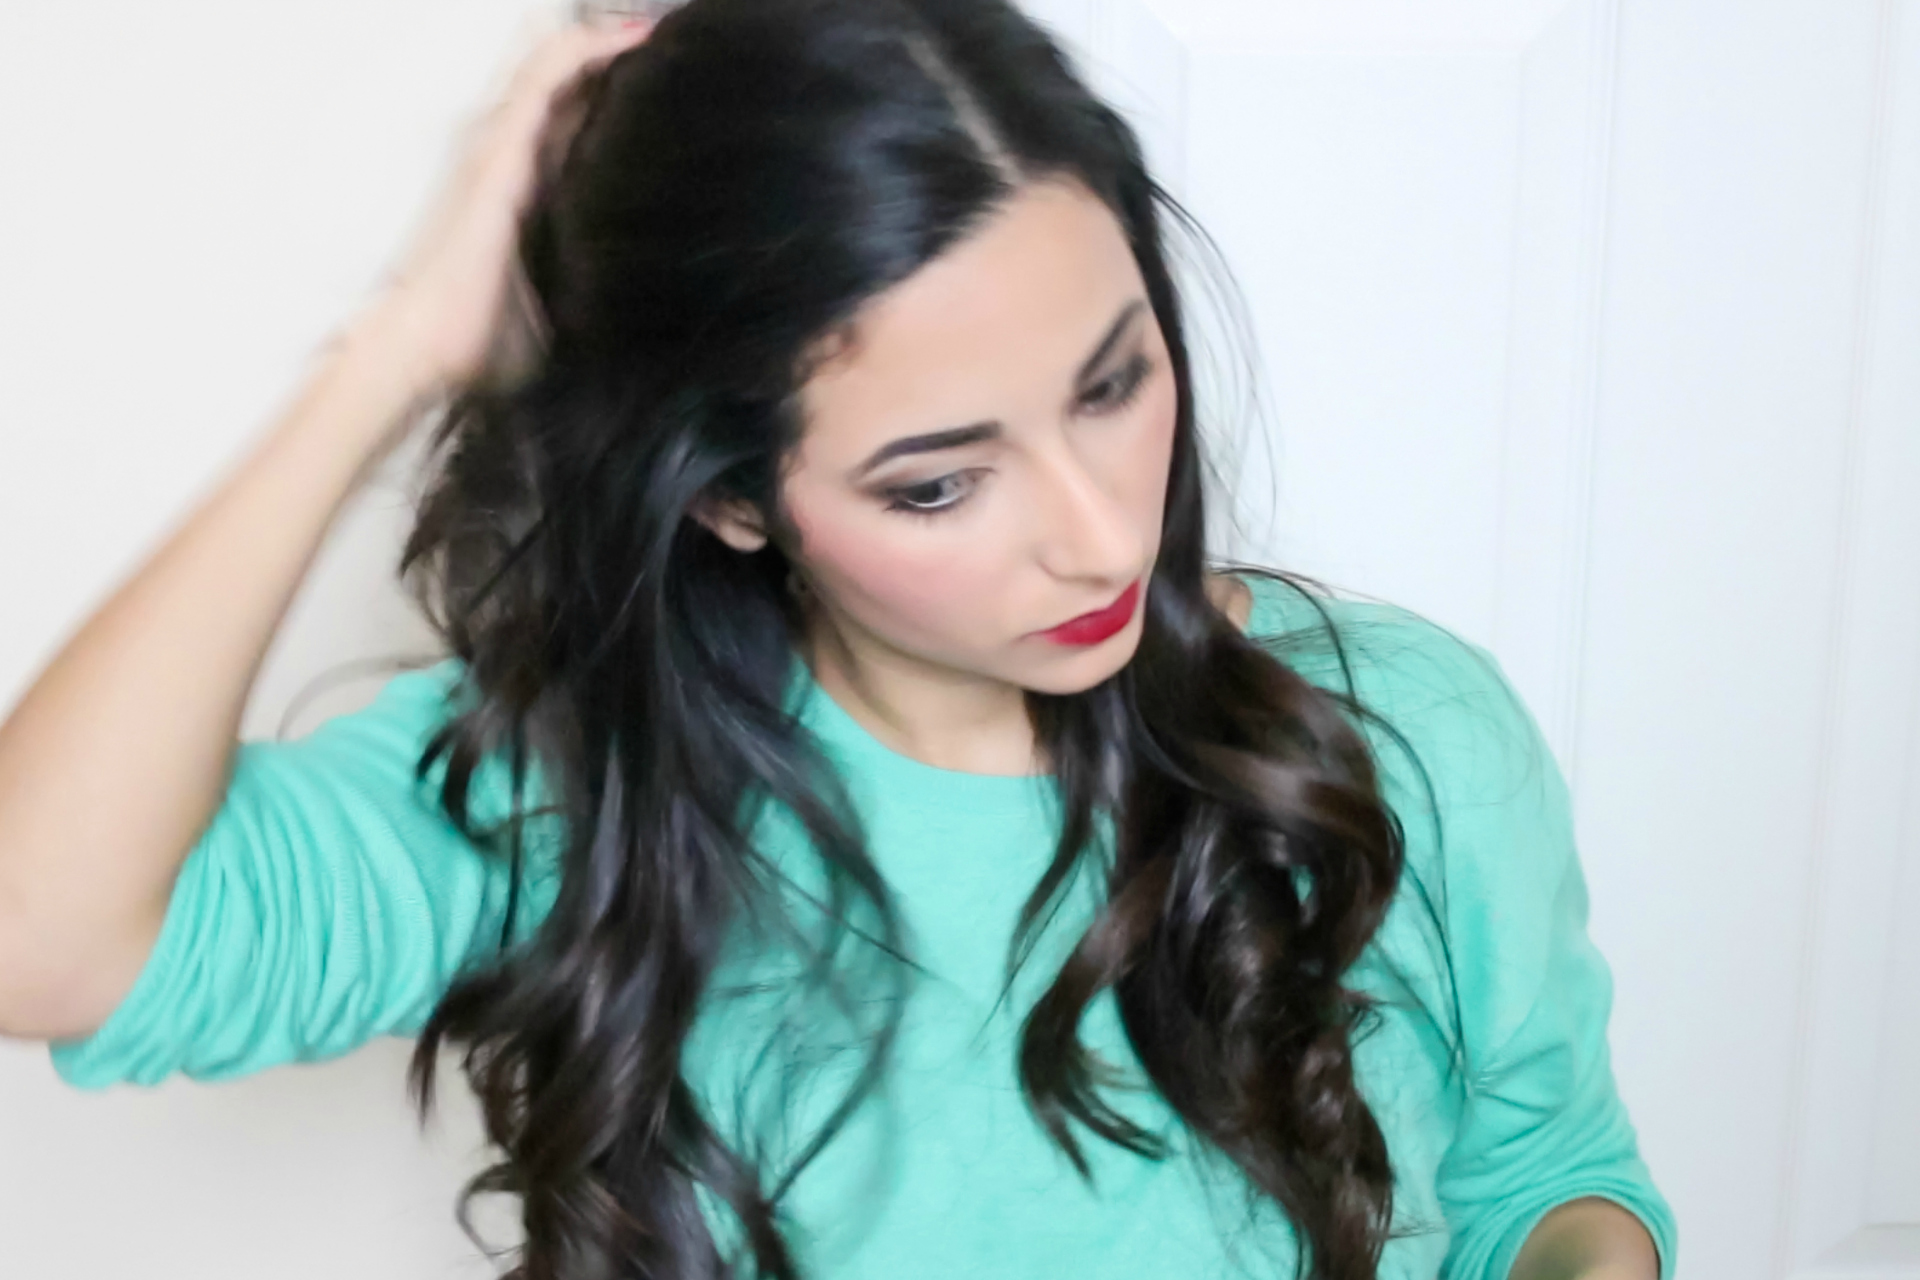 Get Ready For a Christmas Party - Makeup, Hair & Outfit | Ysis Lorenna